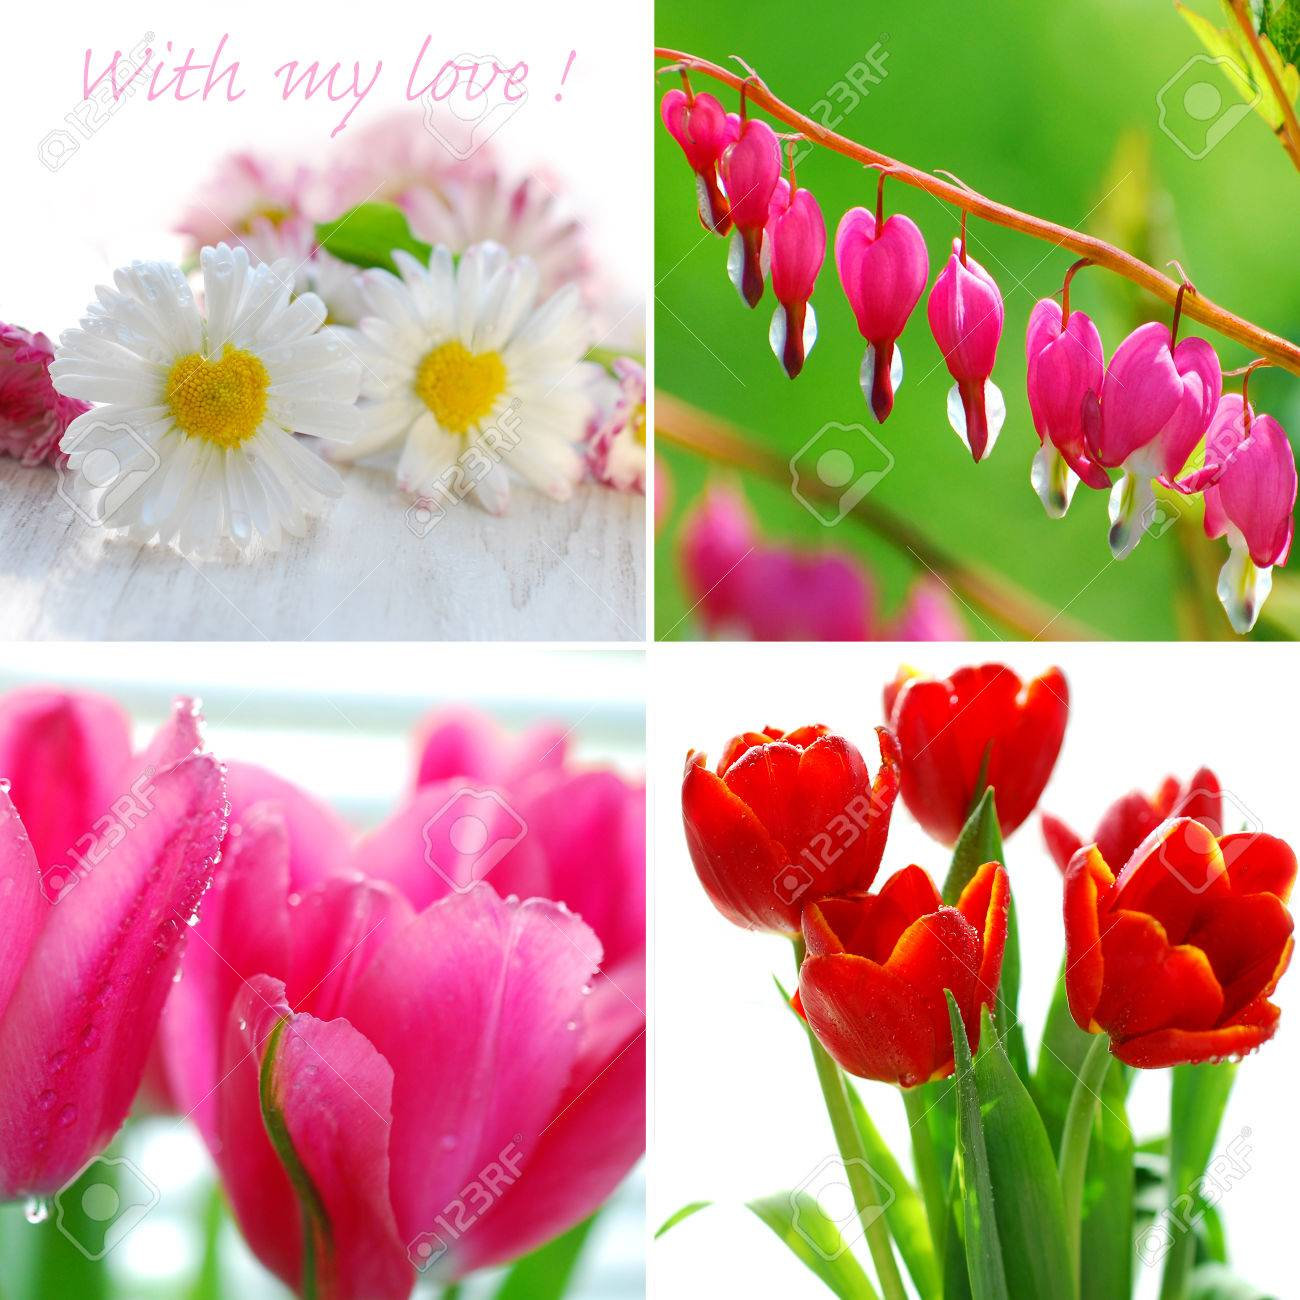 Beautiful valentine s collage with flowers as symbol of love stock beautiful valentine s collage with flowers as symbol of love stock photo 25338441 izmirmasajfo